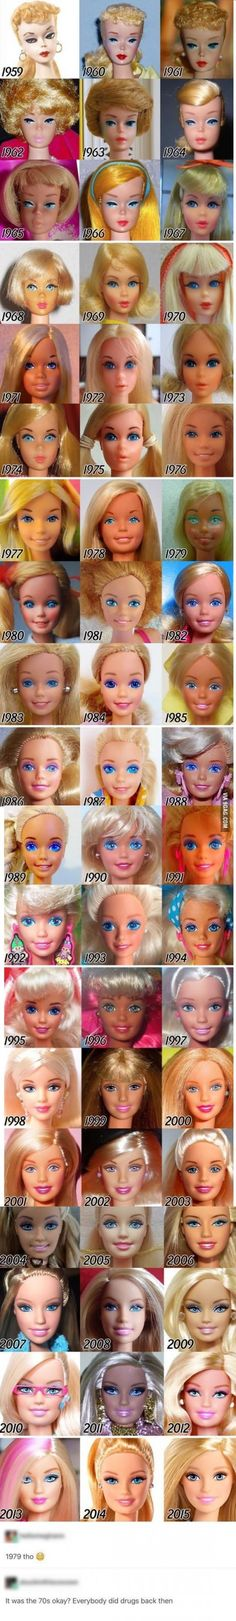 Barbies from 1959 - 2015- That wasn't a good quality pic of the '79 doll. Dolls from that year were absolutely gorgeous. Just ignore the pics from 2006-2014. 2015 is fine, and nothing will be OK once they change Barbie's body (perfectly healthy in her world) to something that isn't right for her build and image.